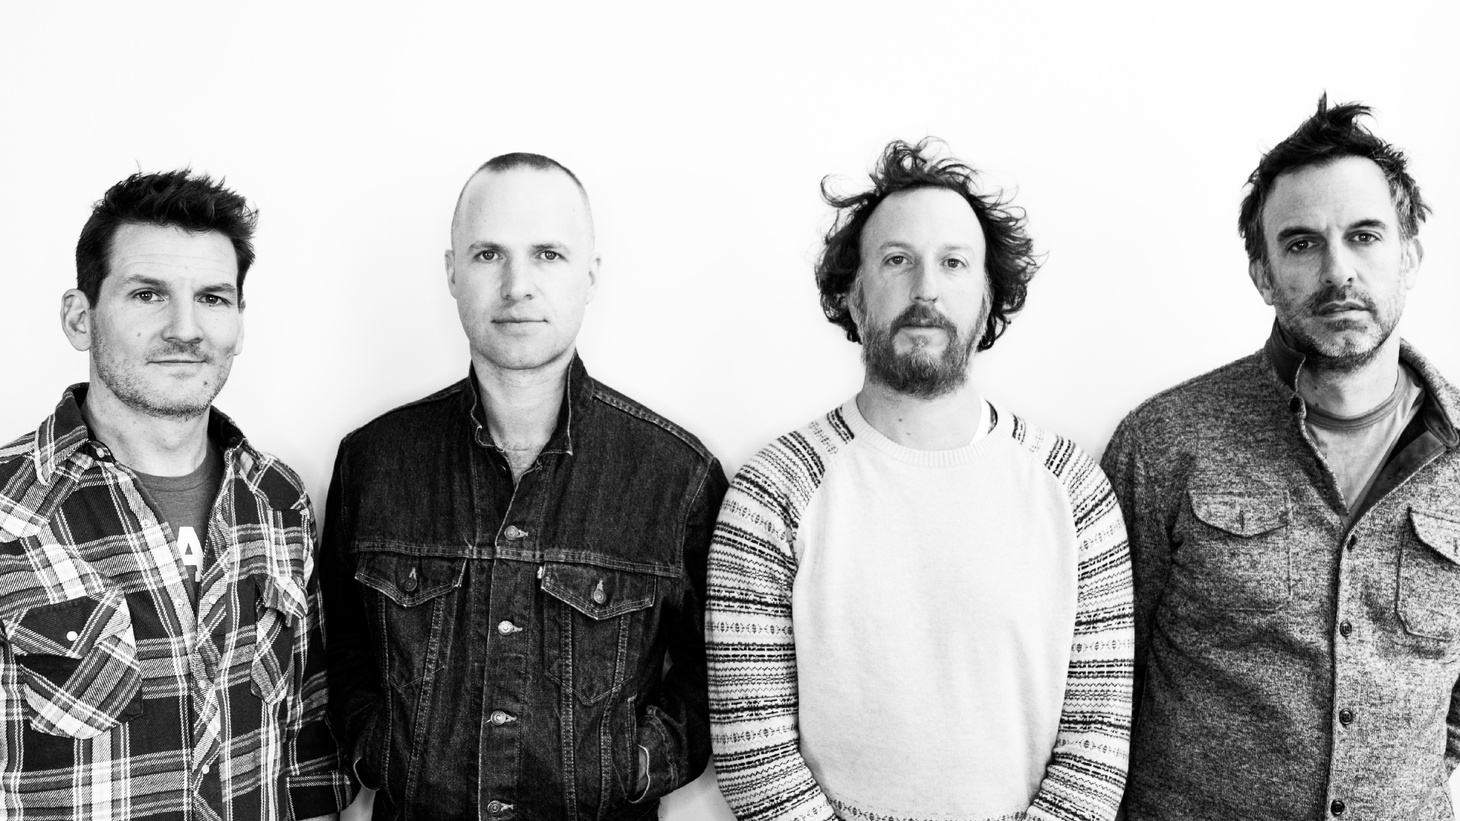 """Every few years, with the release of new music from them, we are reminded of Guster's greatness. Seductively steady, """"Hard Times"""" gives us a hint of an album on the horizon and showcases their unique charm via new sonic pathways."""